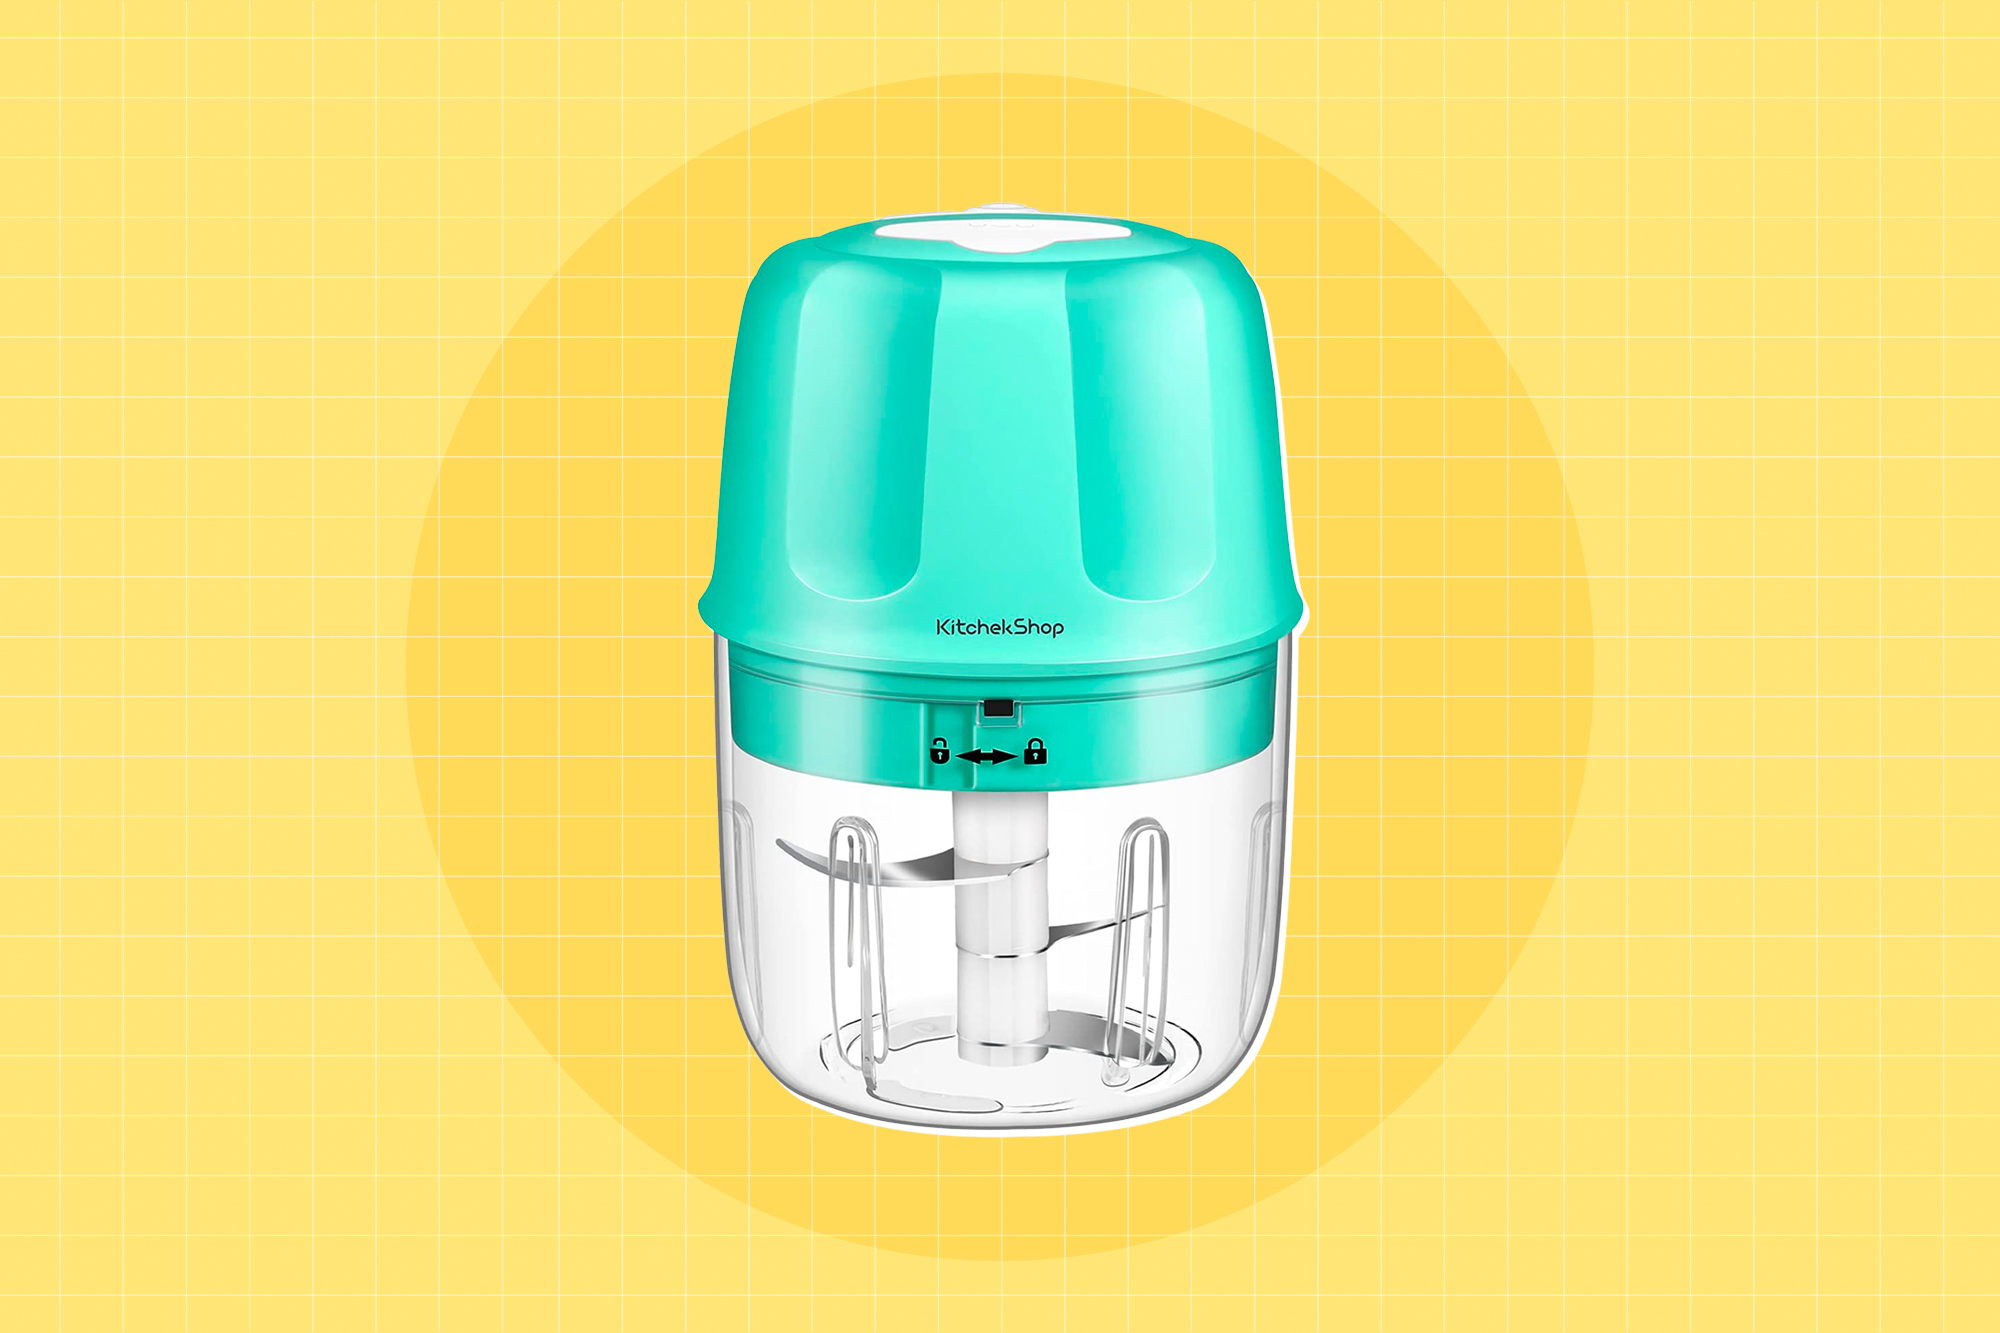 Electric Garlic Chopper, Portable Cordless Mini Food Processor, Rechargeable Vegetable Chopper Blender for Nuts Chili Onion Minced Meat and Spices